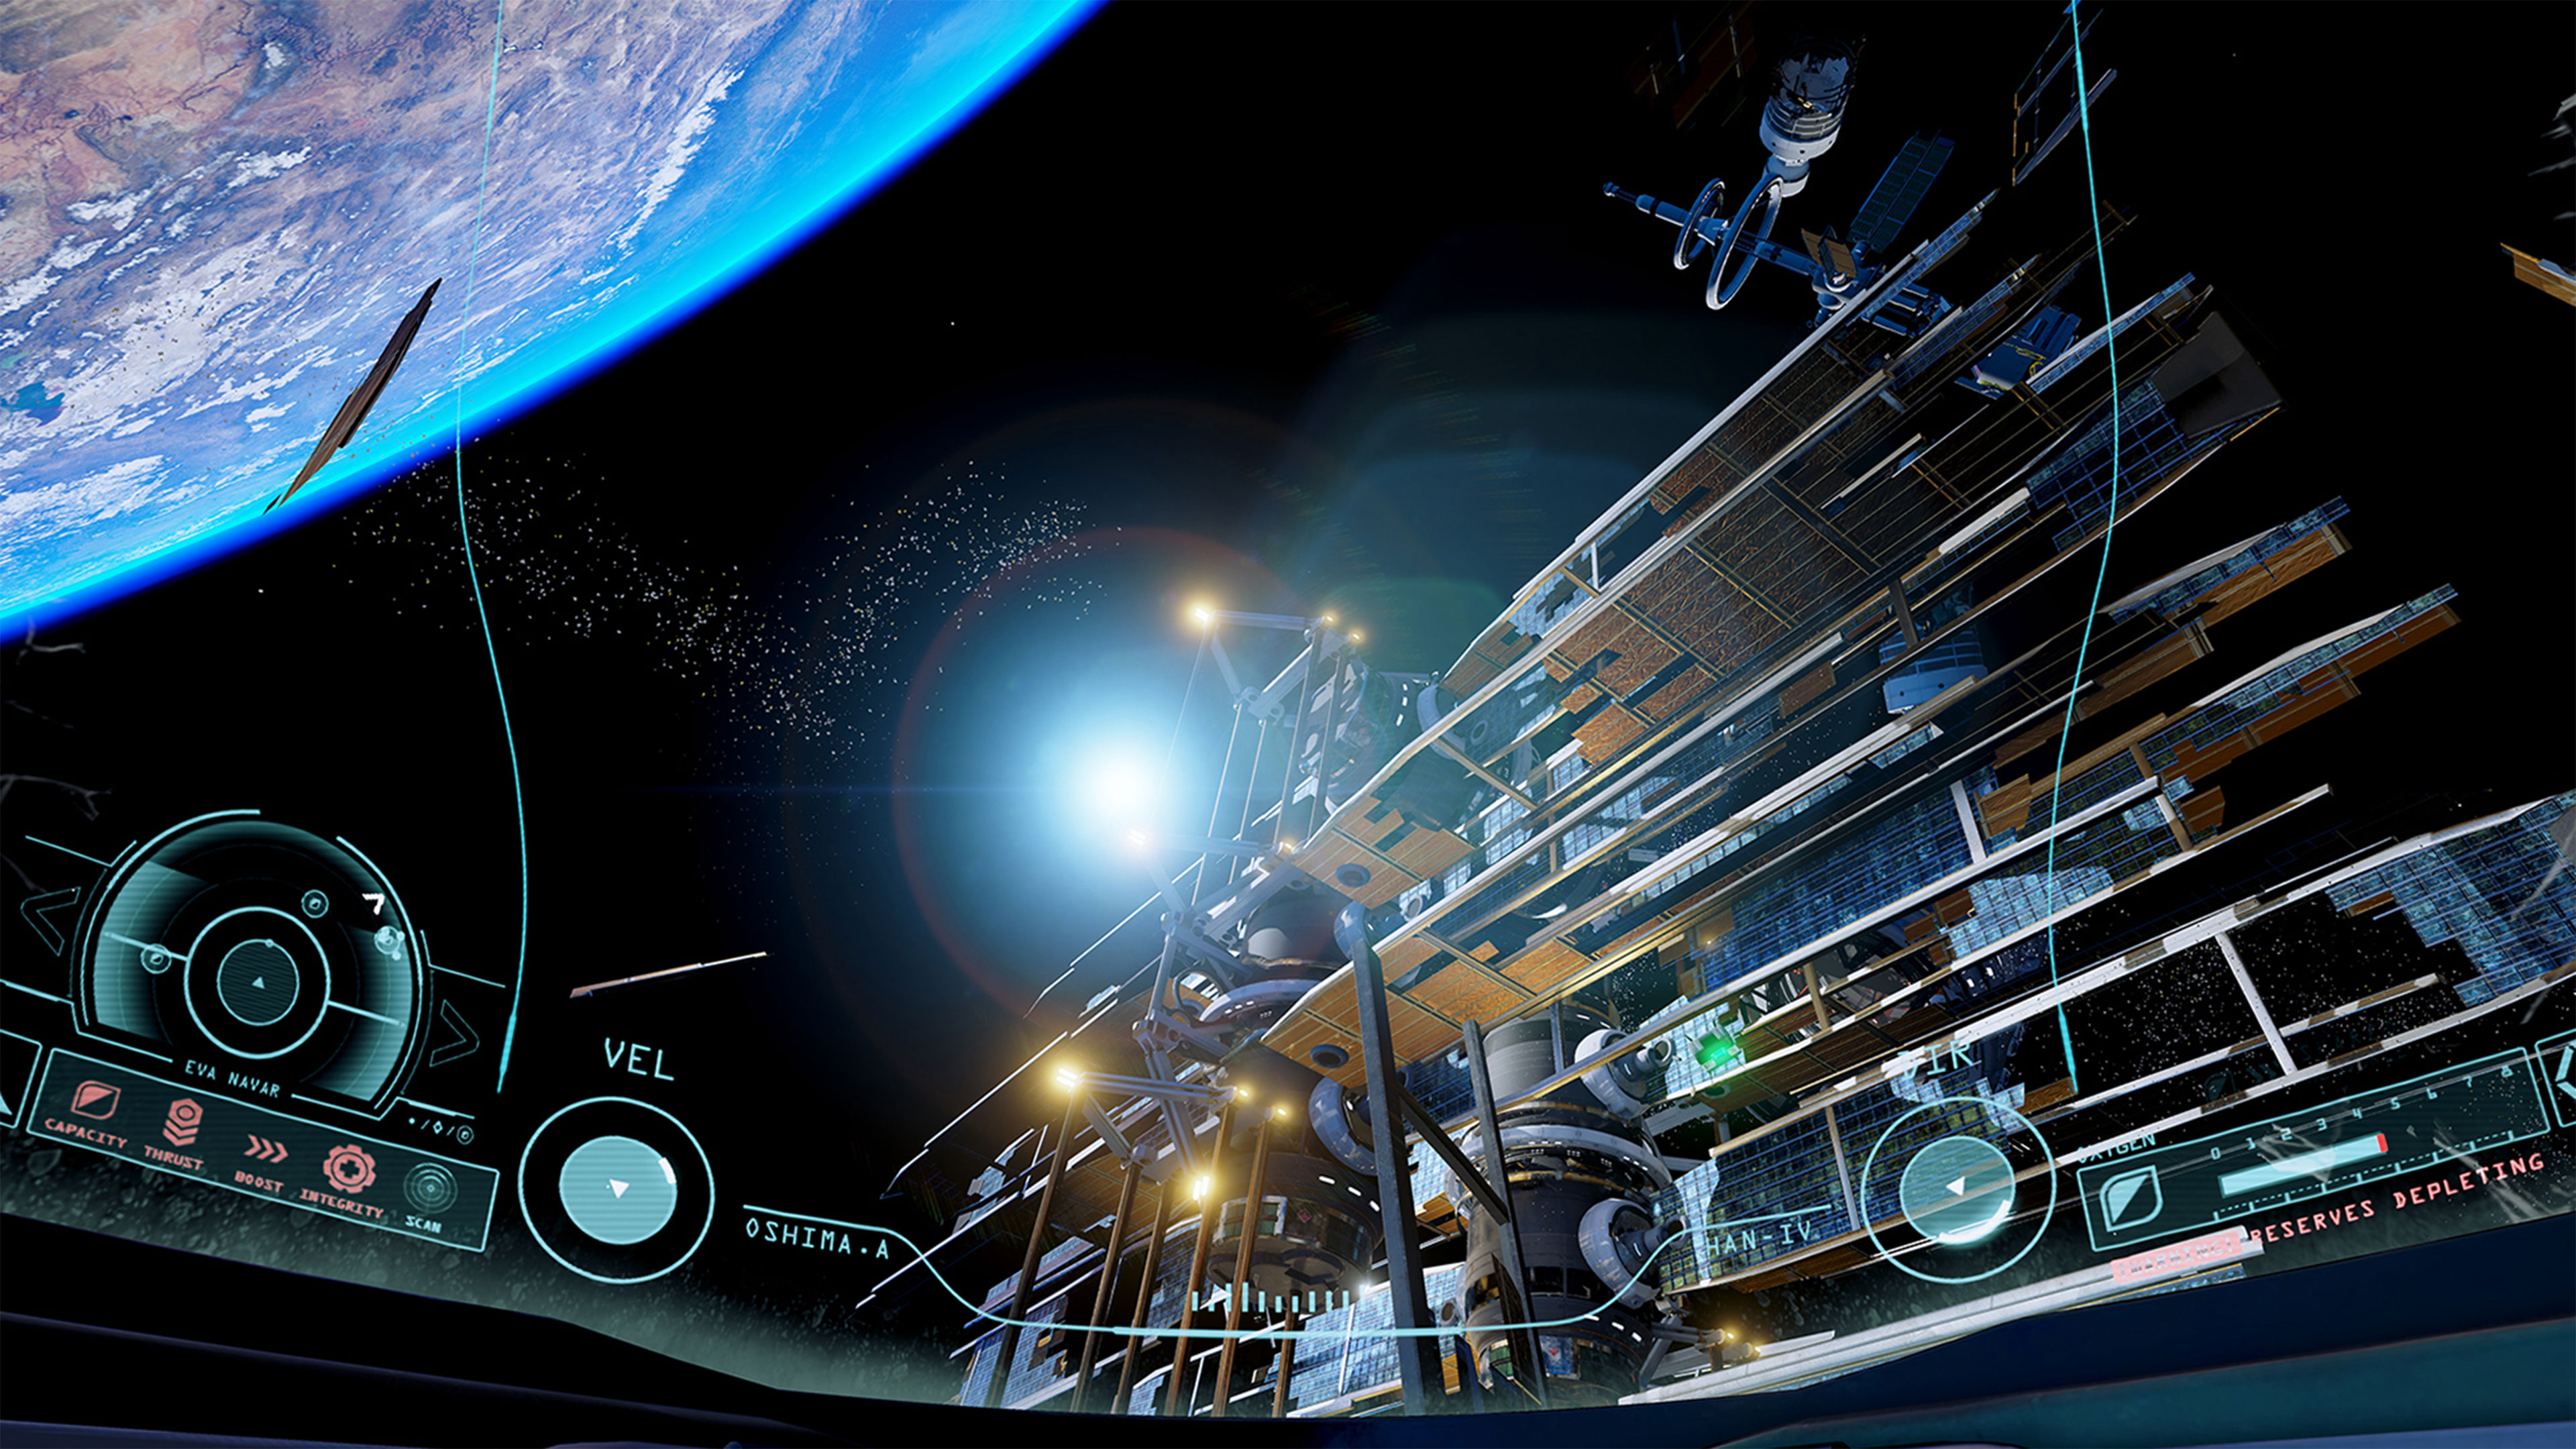 Music Background 4k Hd Desktop Wallpaper For 4k Ultra Hd: Adr1ft Wallpapers In Ultra HD